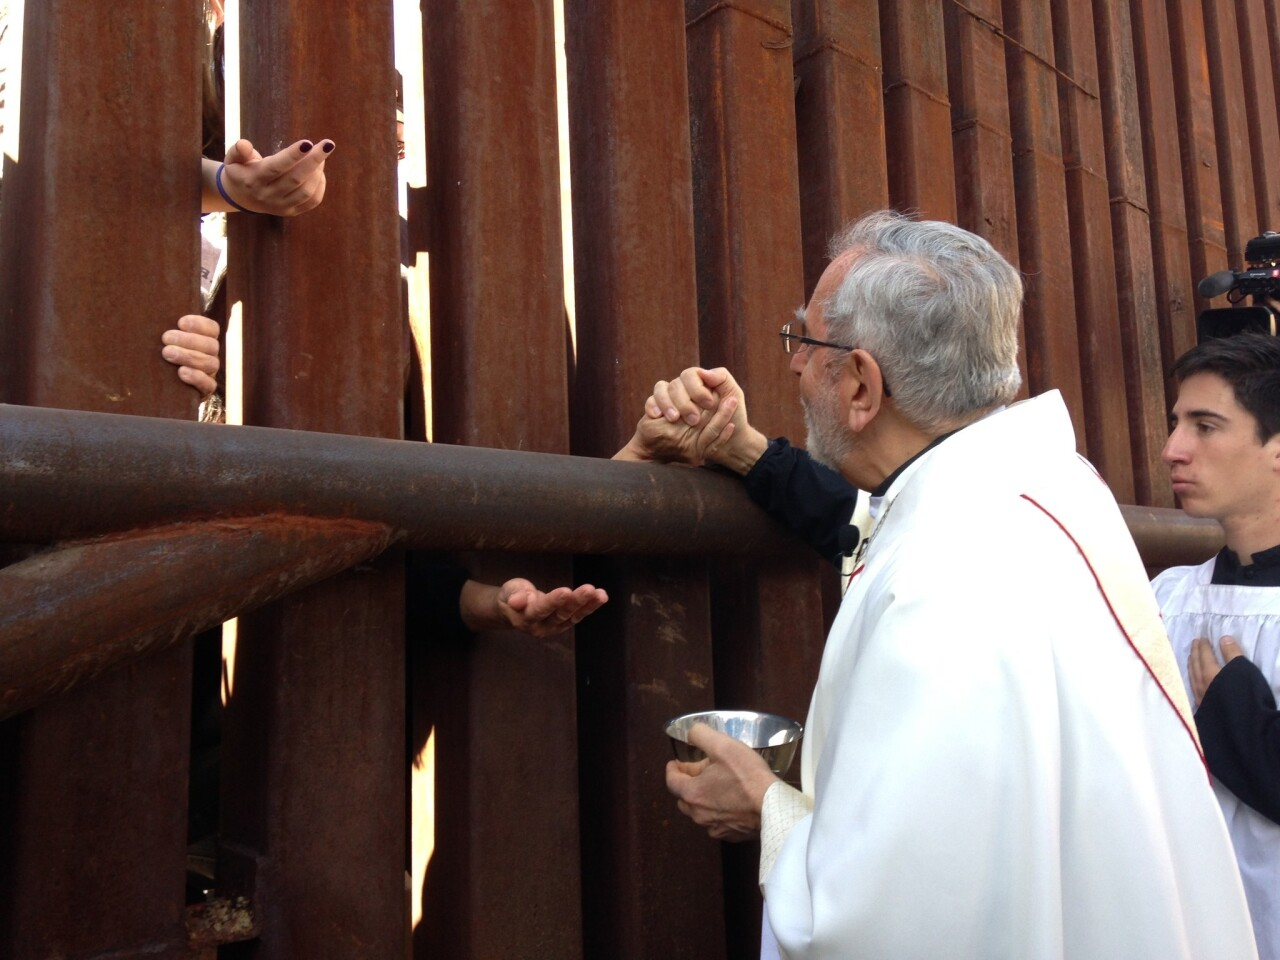 Tucson Bishop Gerald Kicanas gives Communion to people on the Mexican side of the border fence.